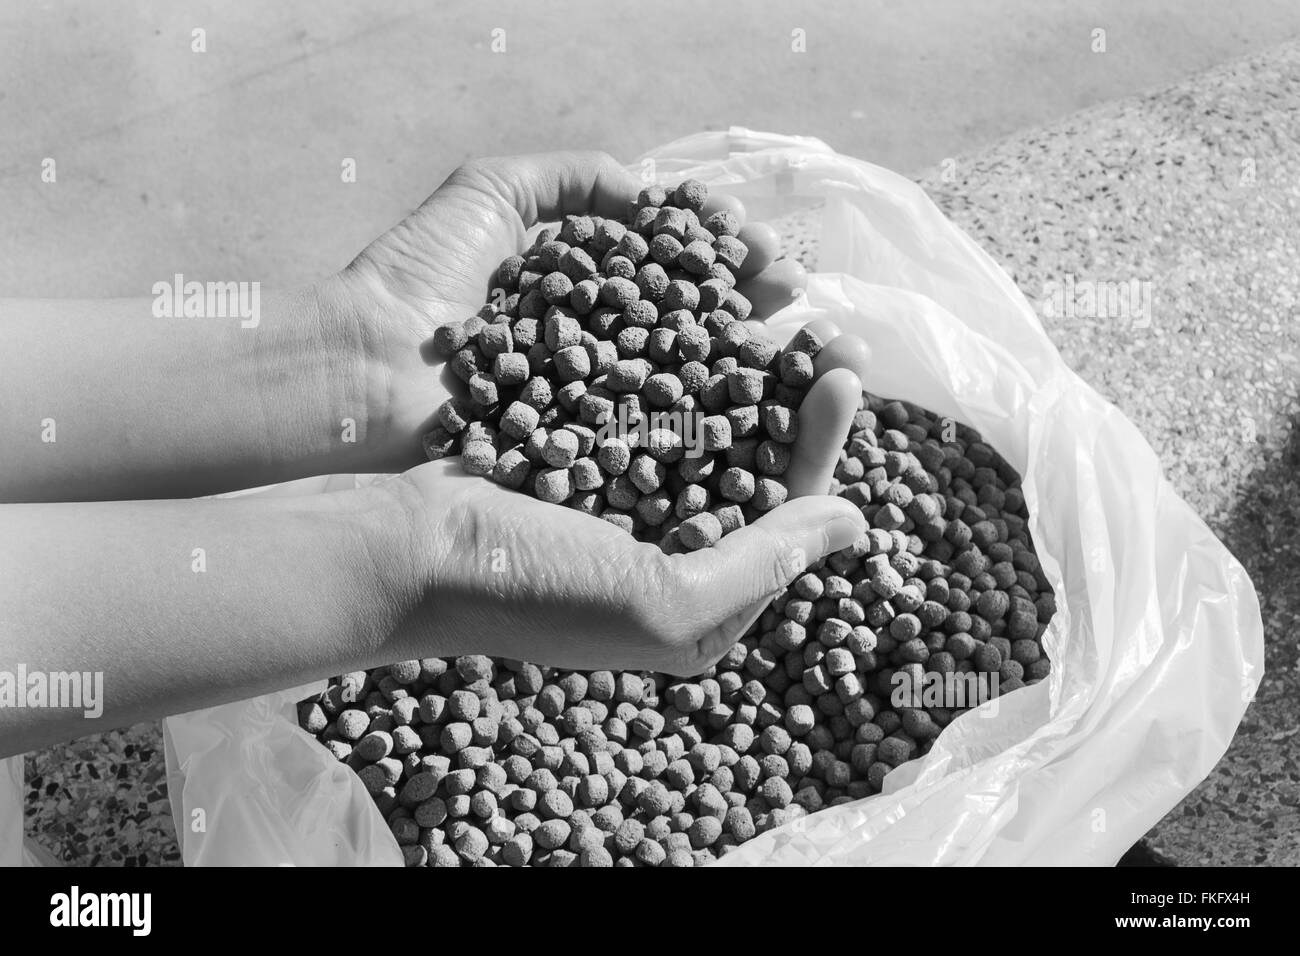 fish feed - Stock Image